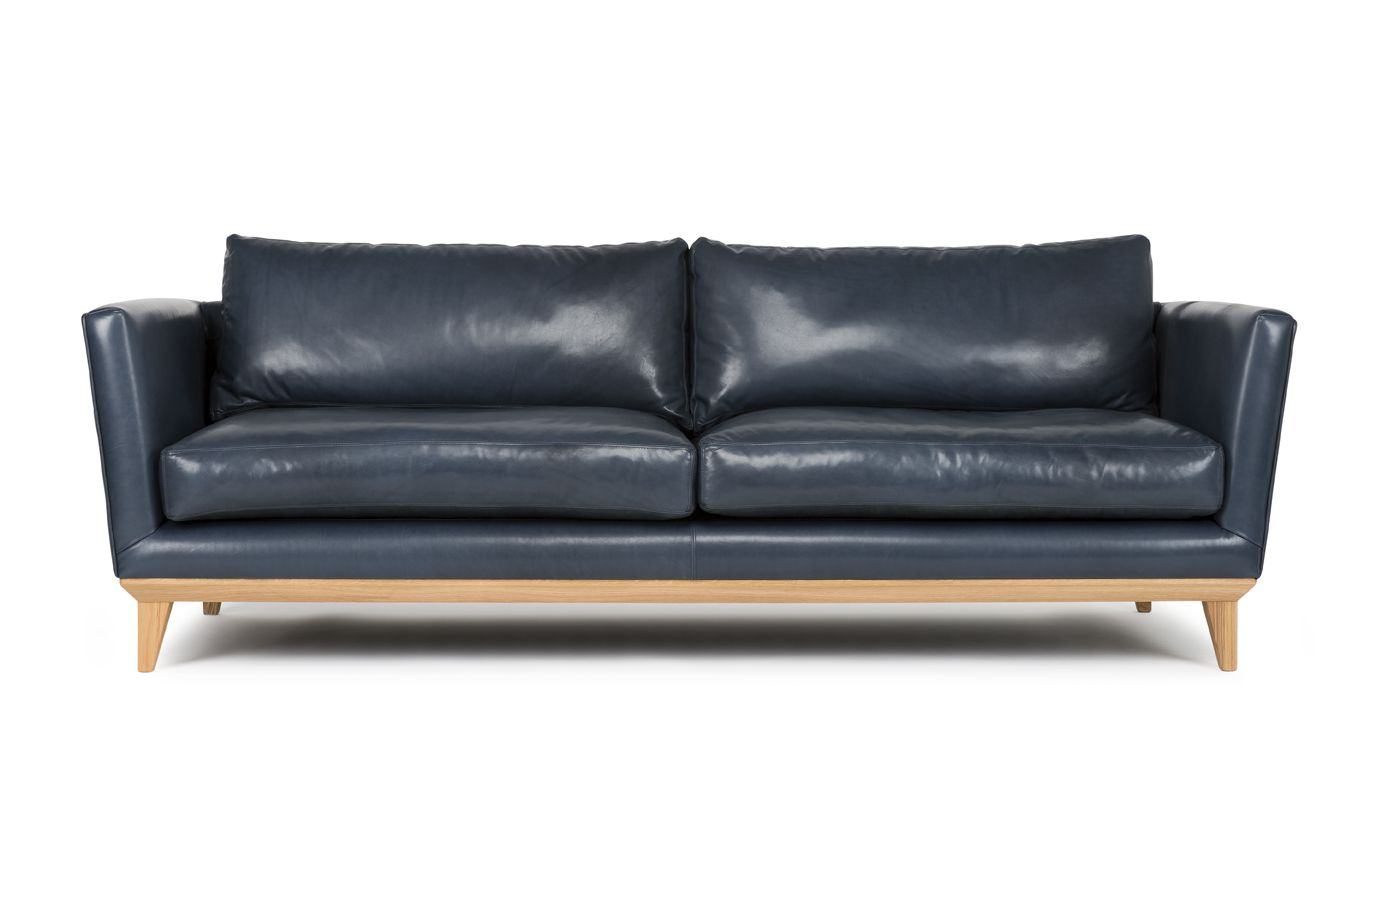 Superbe Curtis Sofa By Arthur G | Navy Leather Sofa | Made In Australia | Melbourne  | Sydney | Perth | Http://www.arthurg.com.au/range